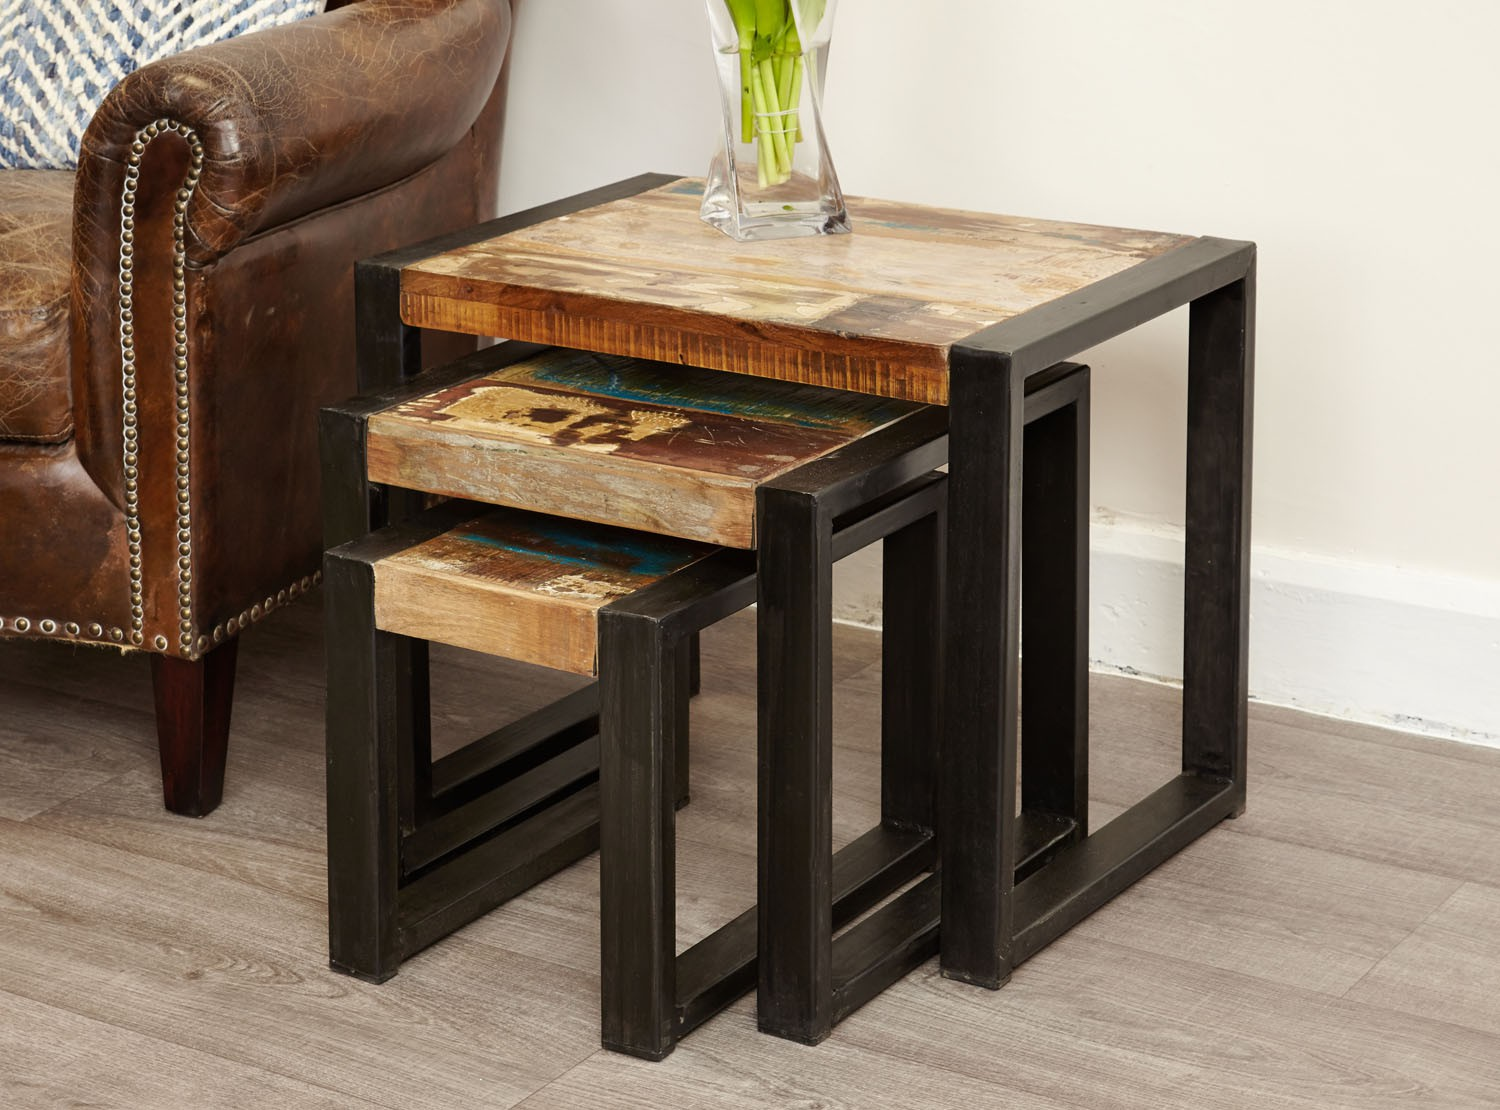 Urban Chic Nest Of Tables Urban Chic Reclaimed Wood Shop By Range Hallowood